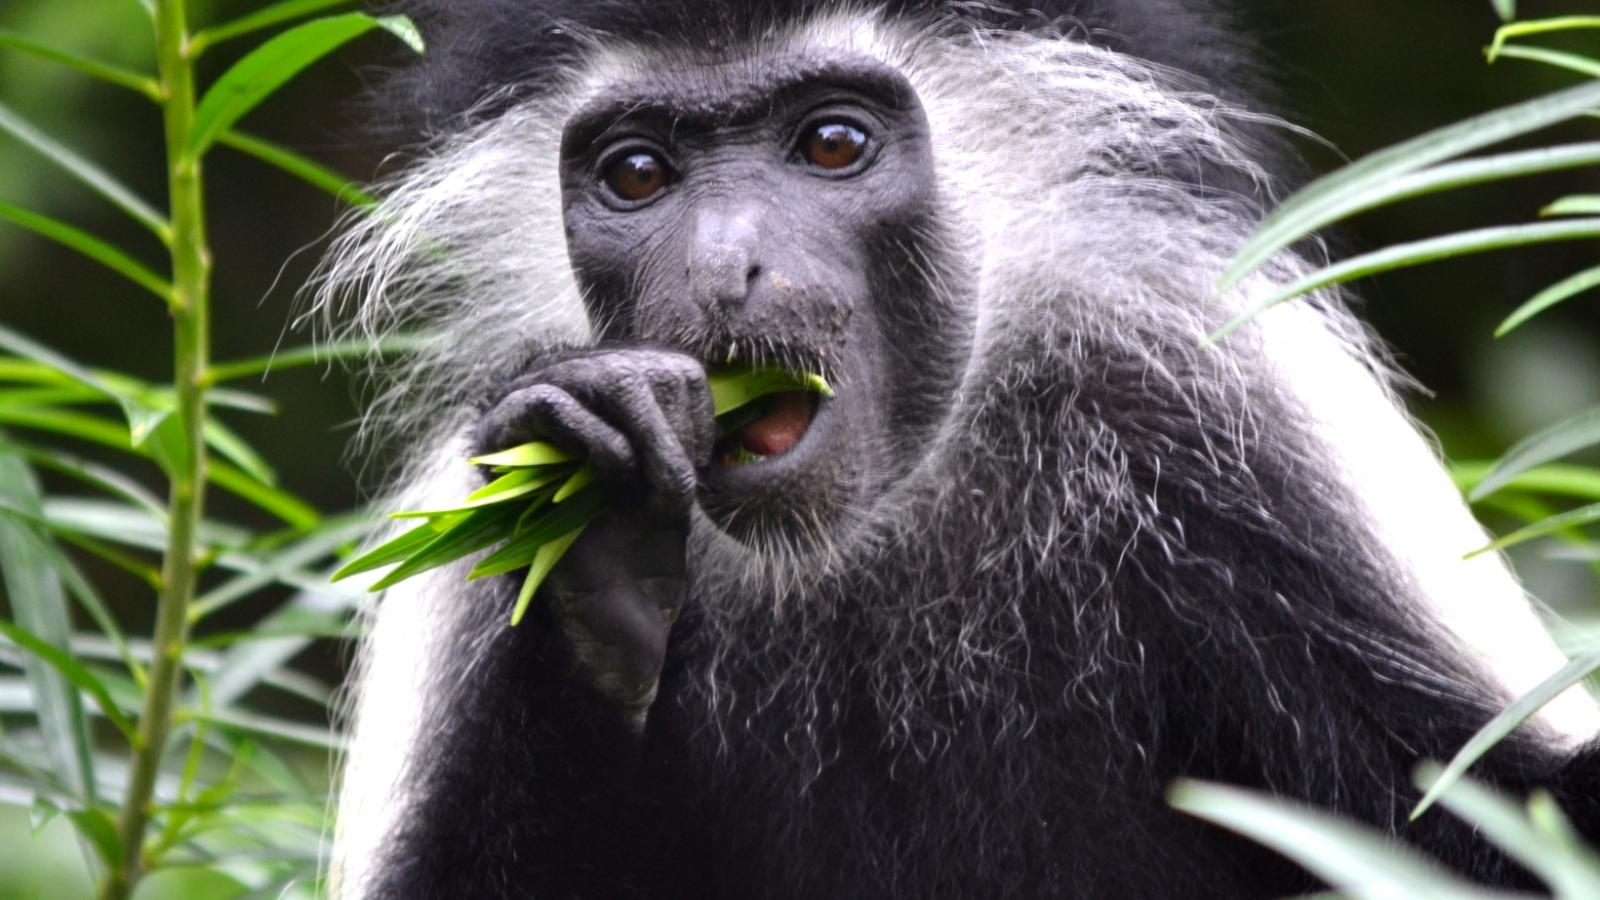 Understanding primate feeding behavior and communication